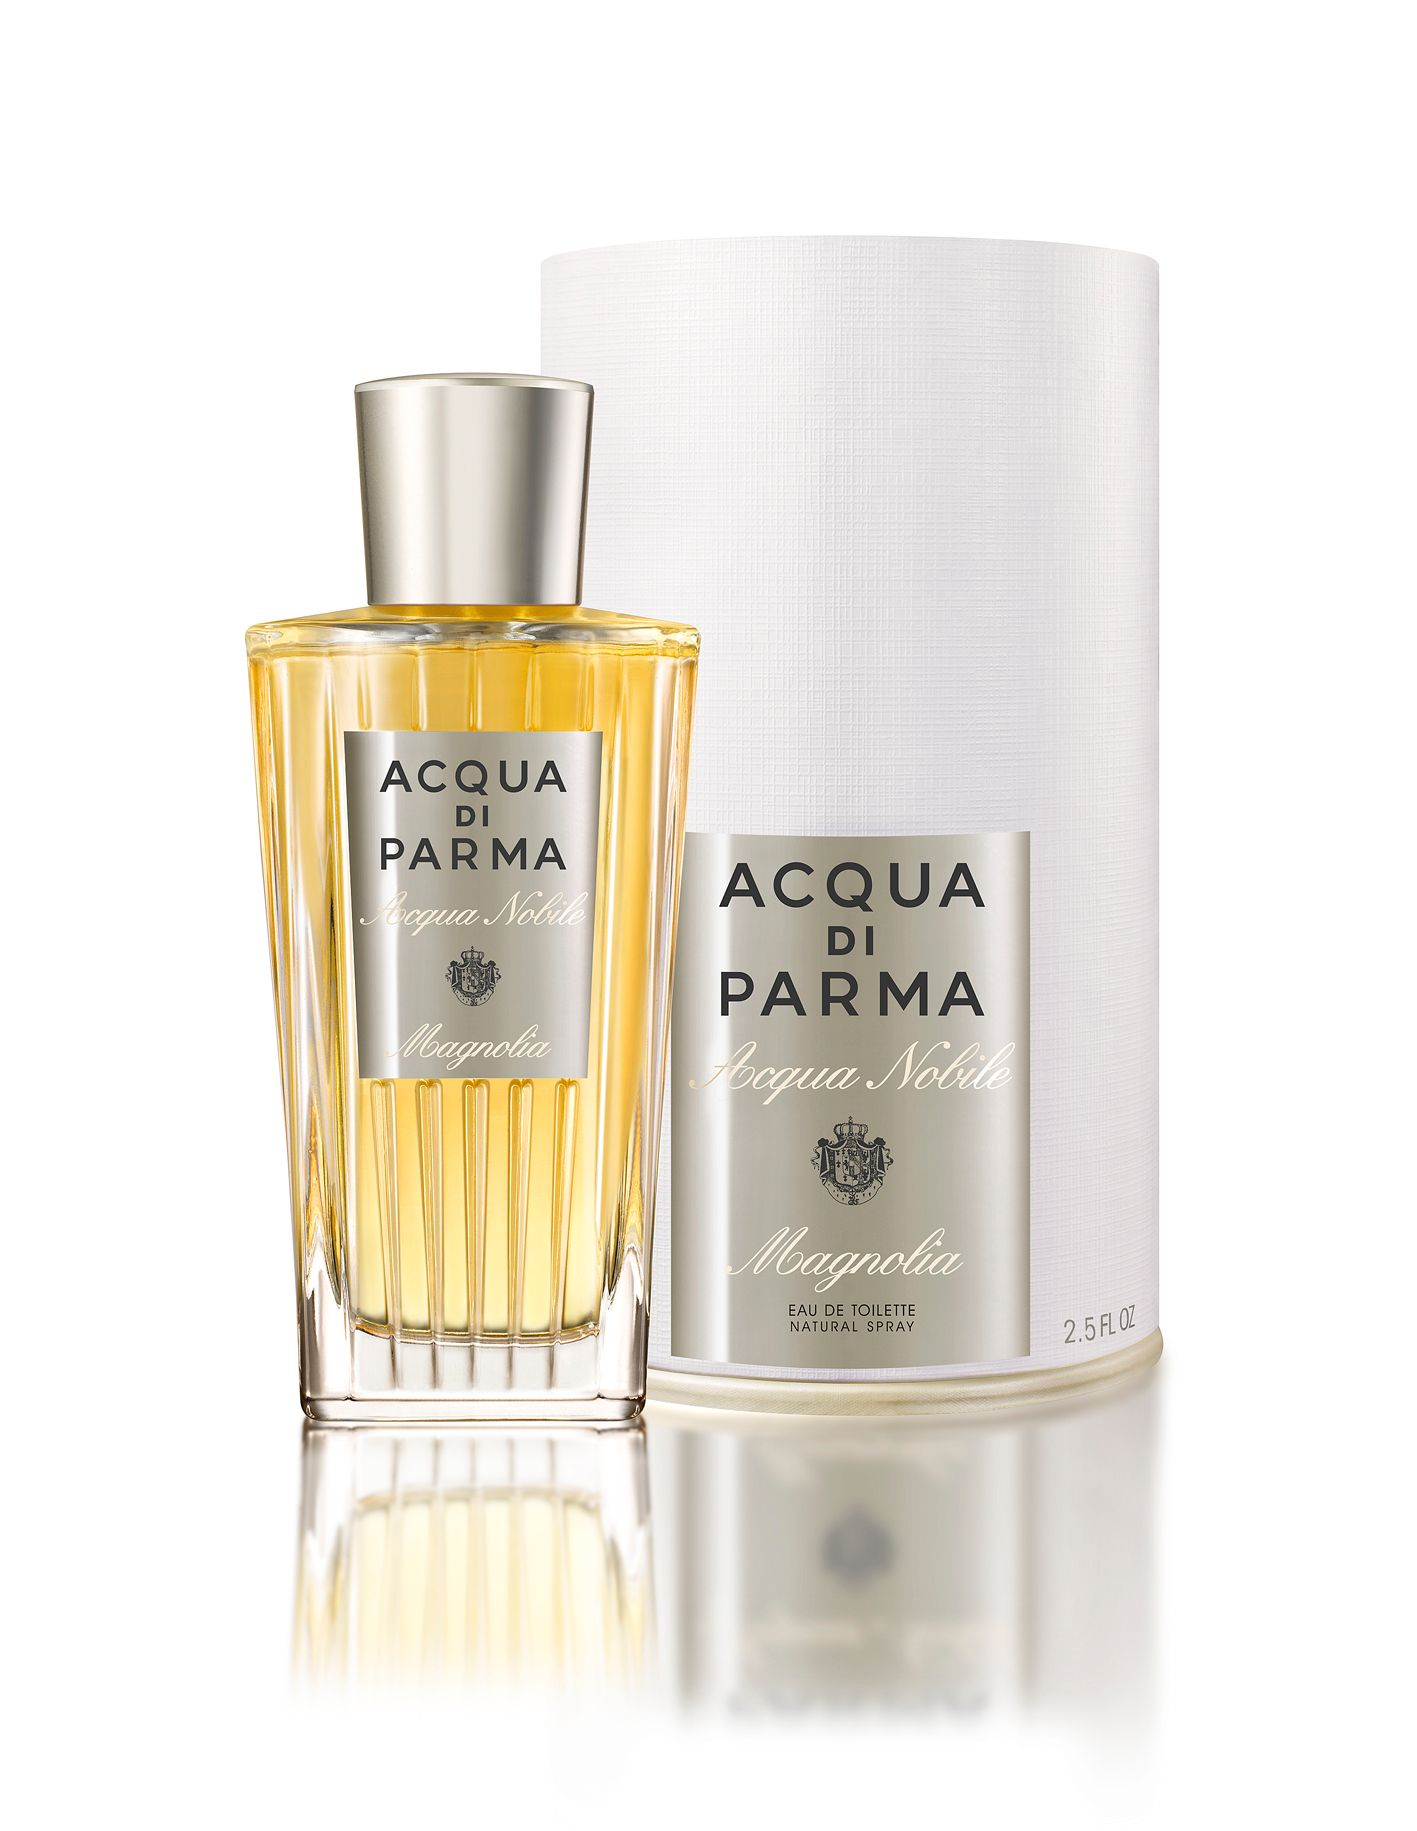 Acqua Nobile Magnolia Eau de Toilette 75ml